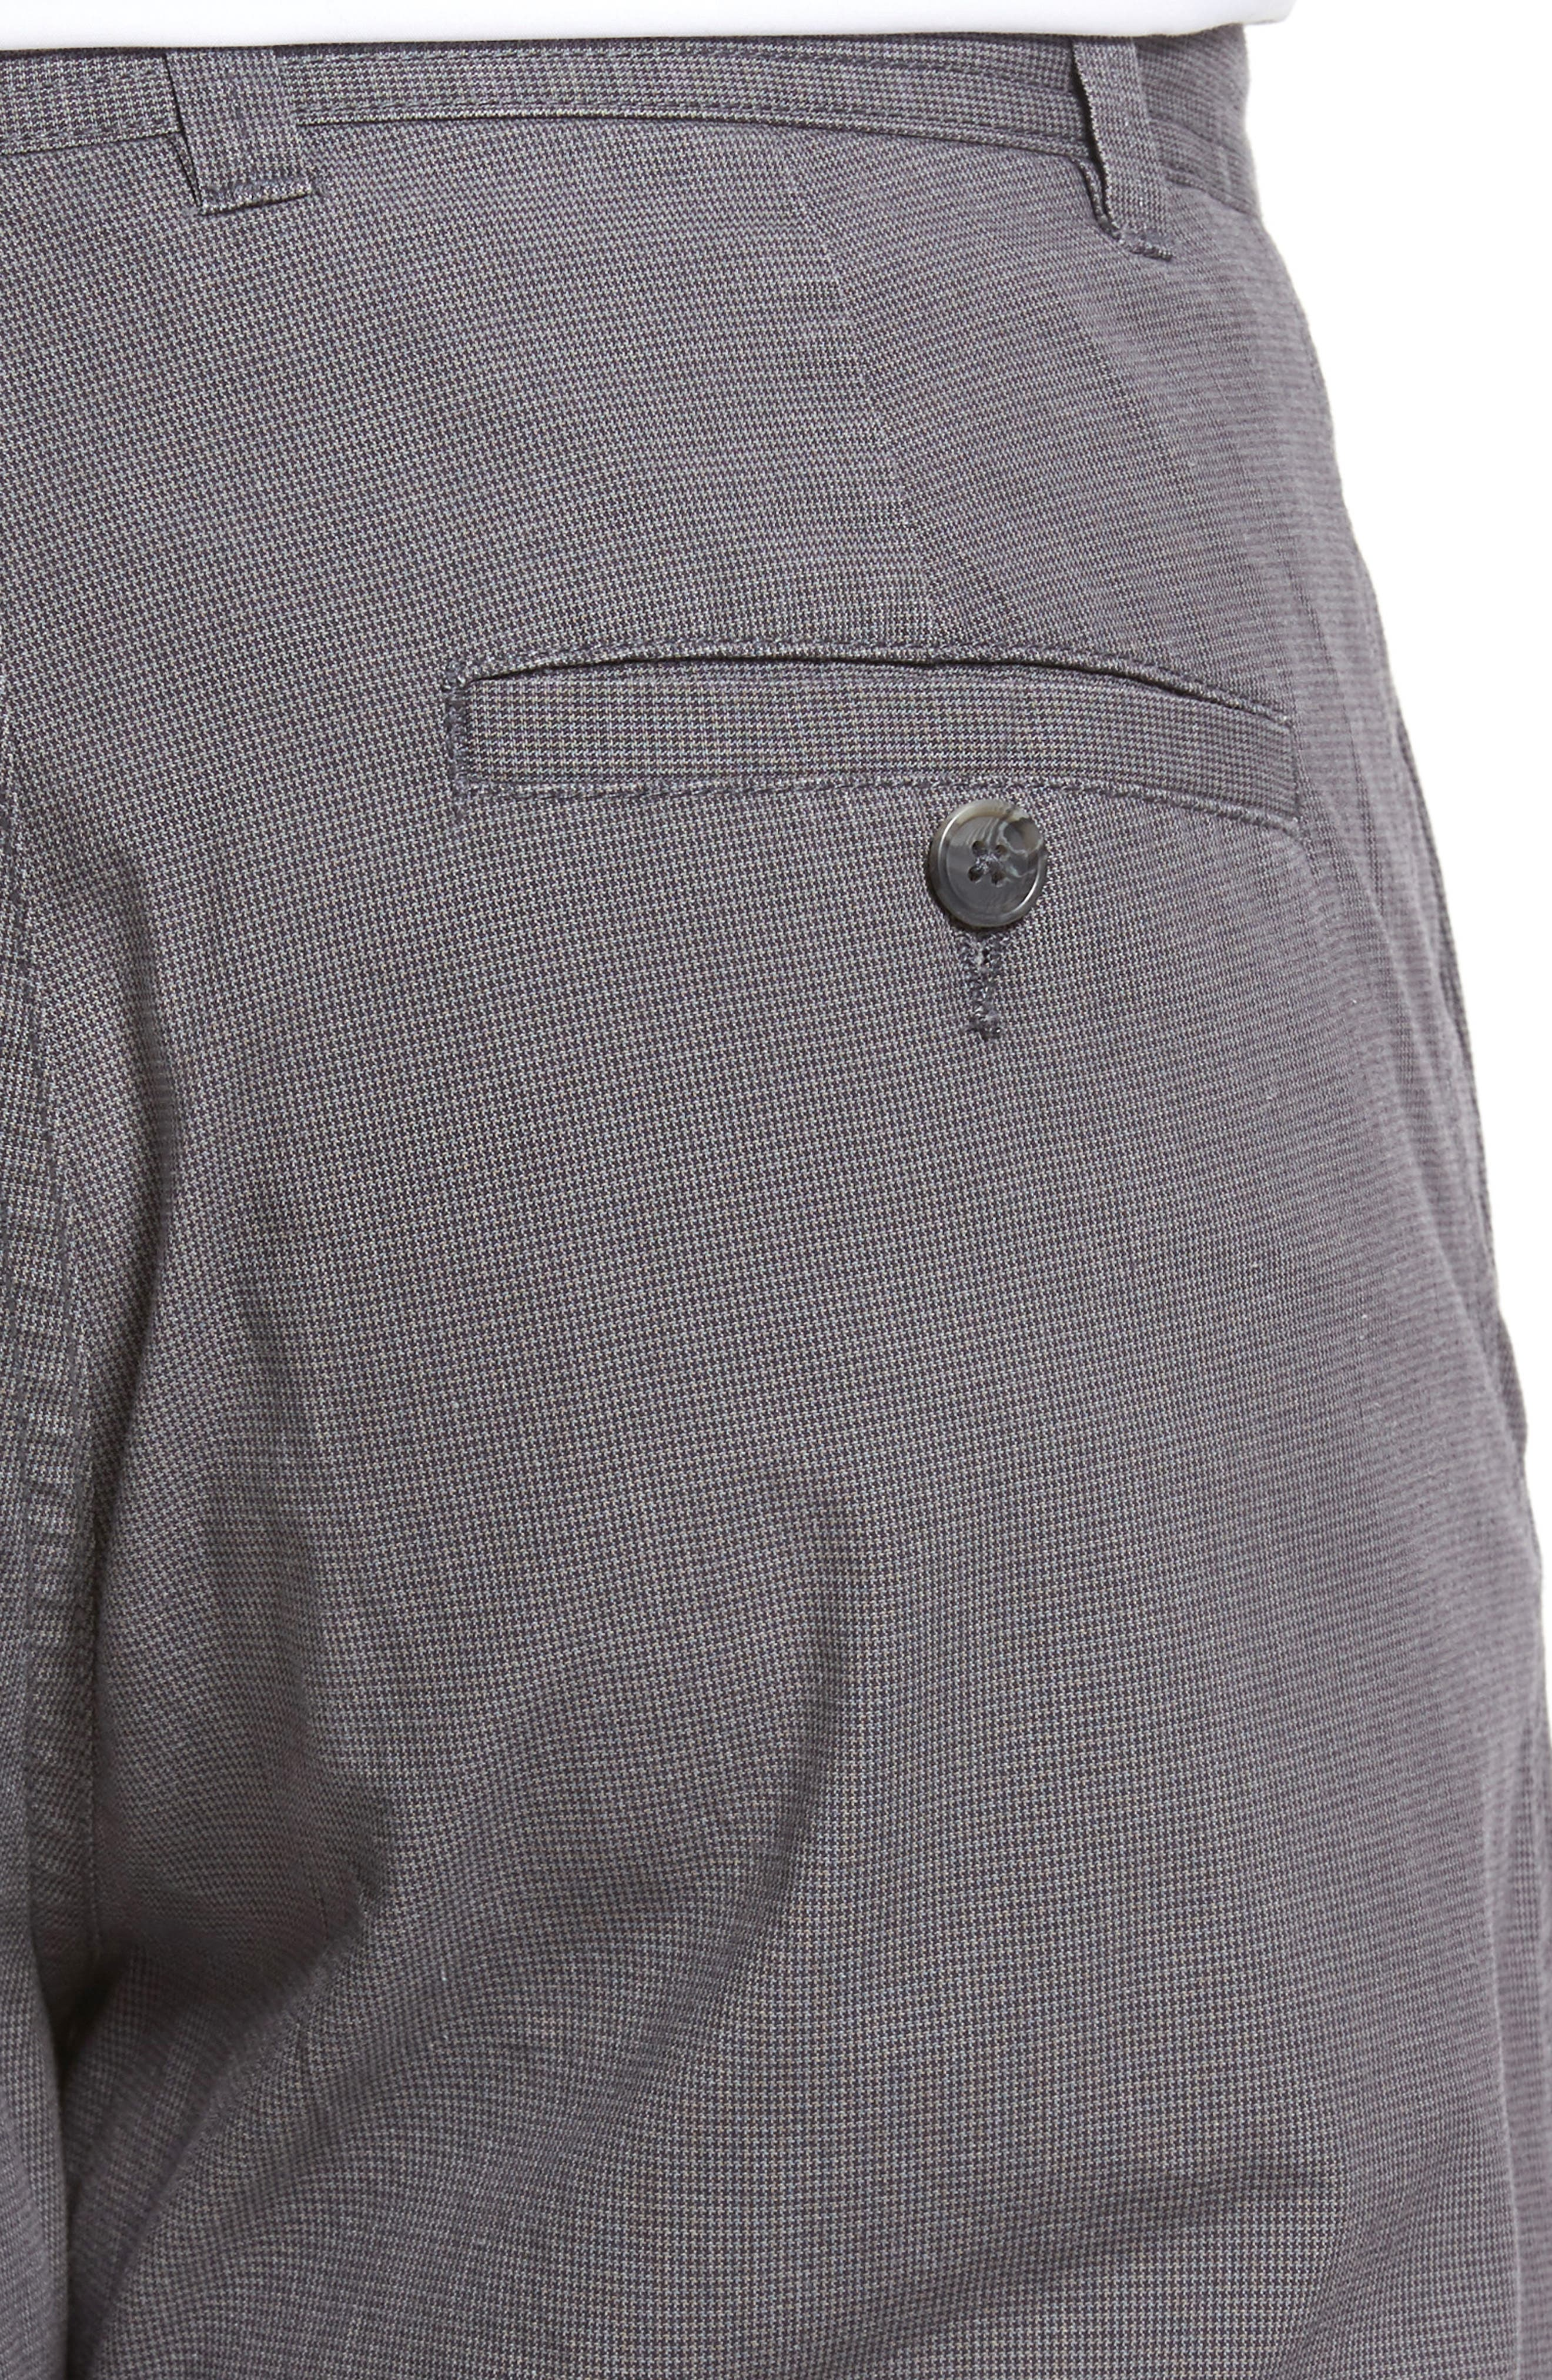 Woodward Regular Fit Trousers,                             Alternate thumbnail 4, color,                             069